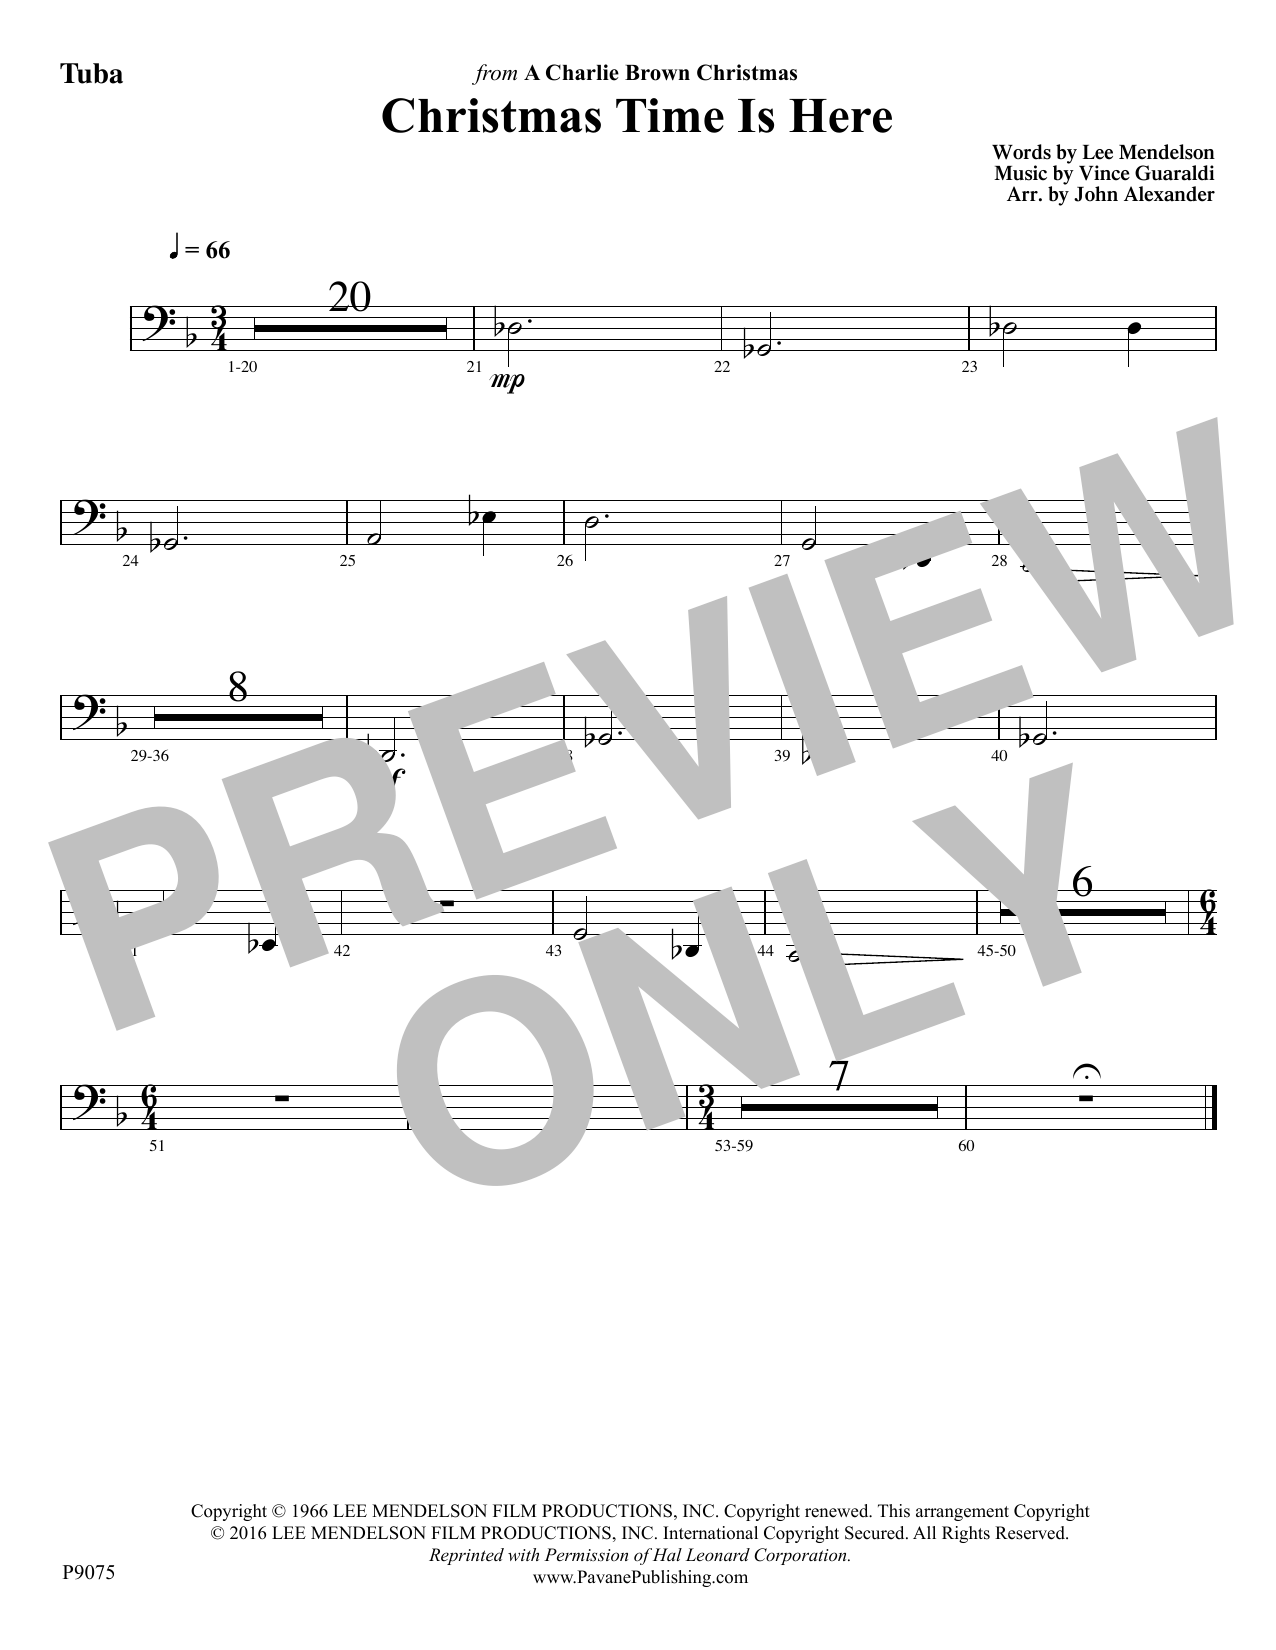 Lee Mendelson - Christmas Time Is Here - Tuba